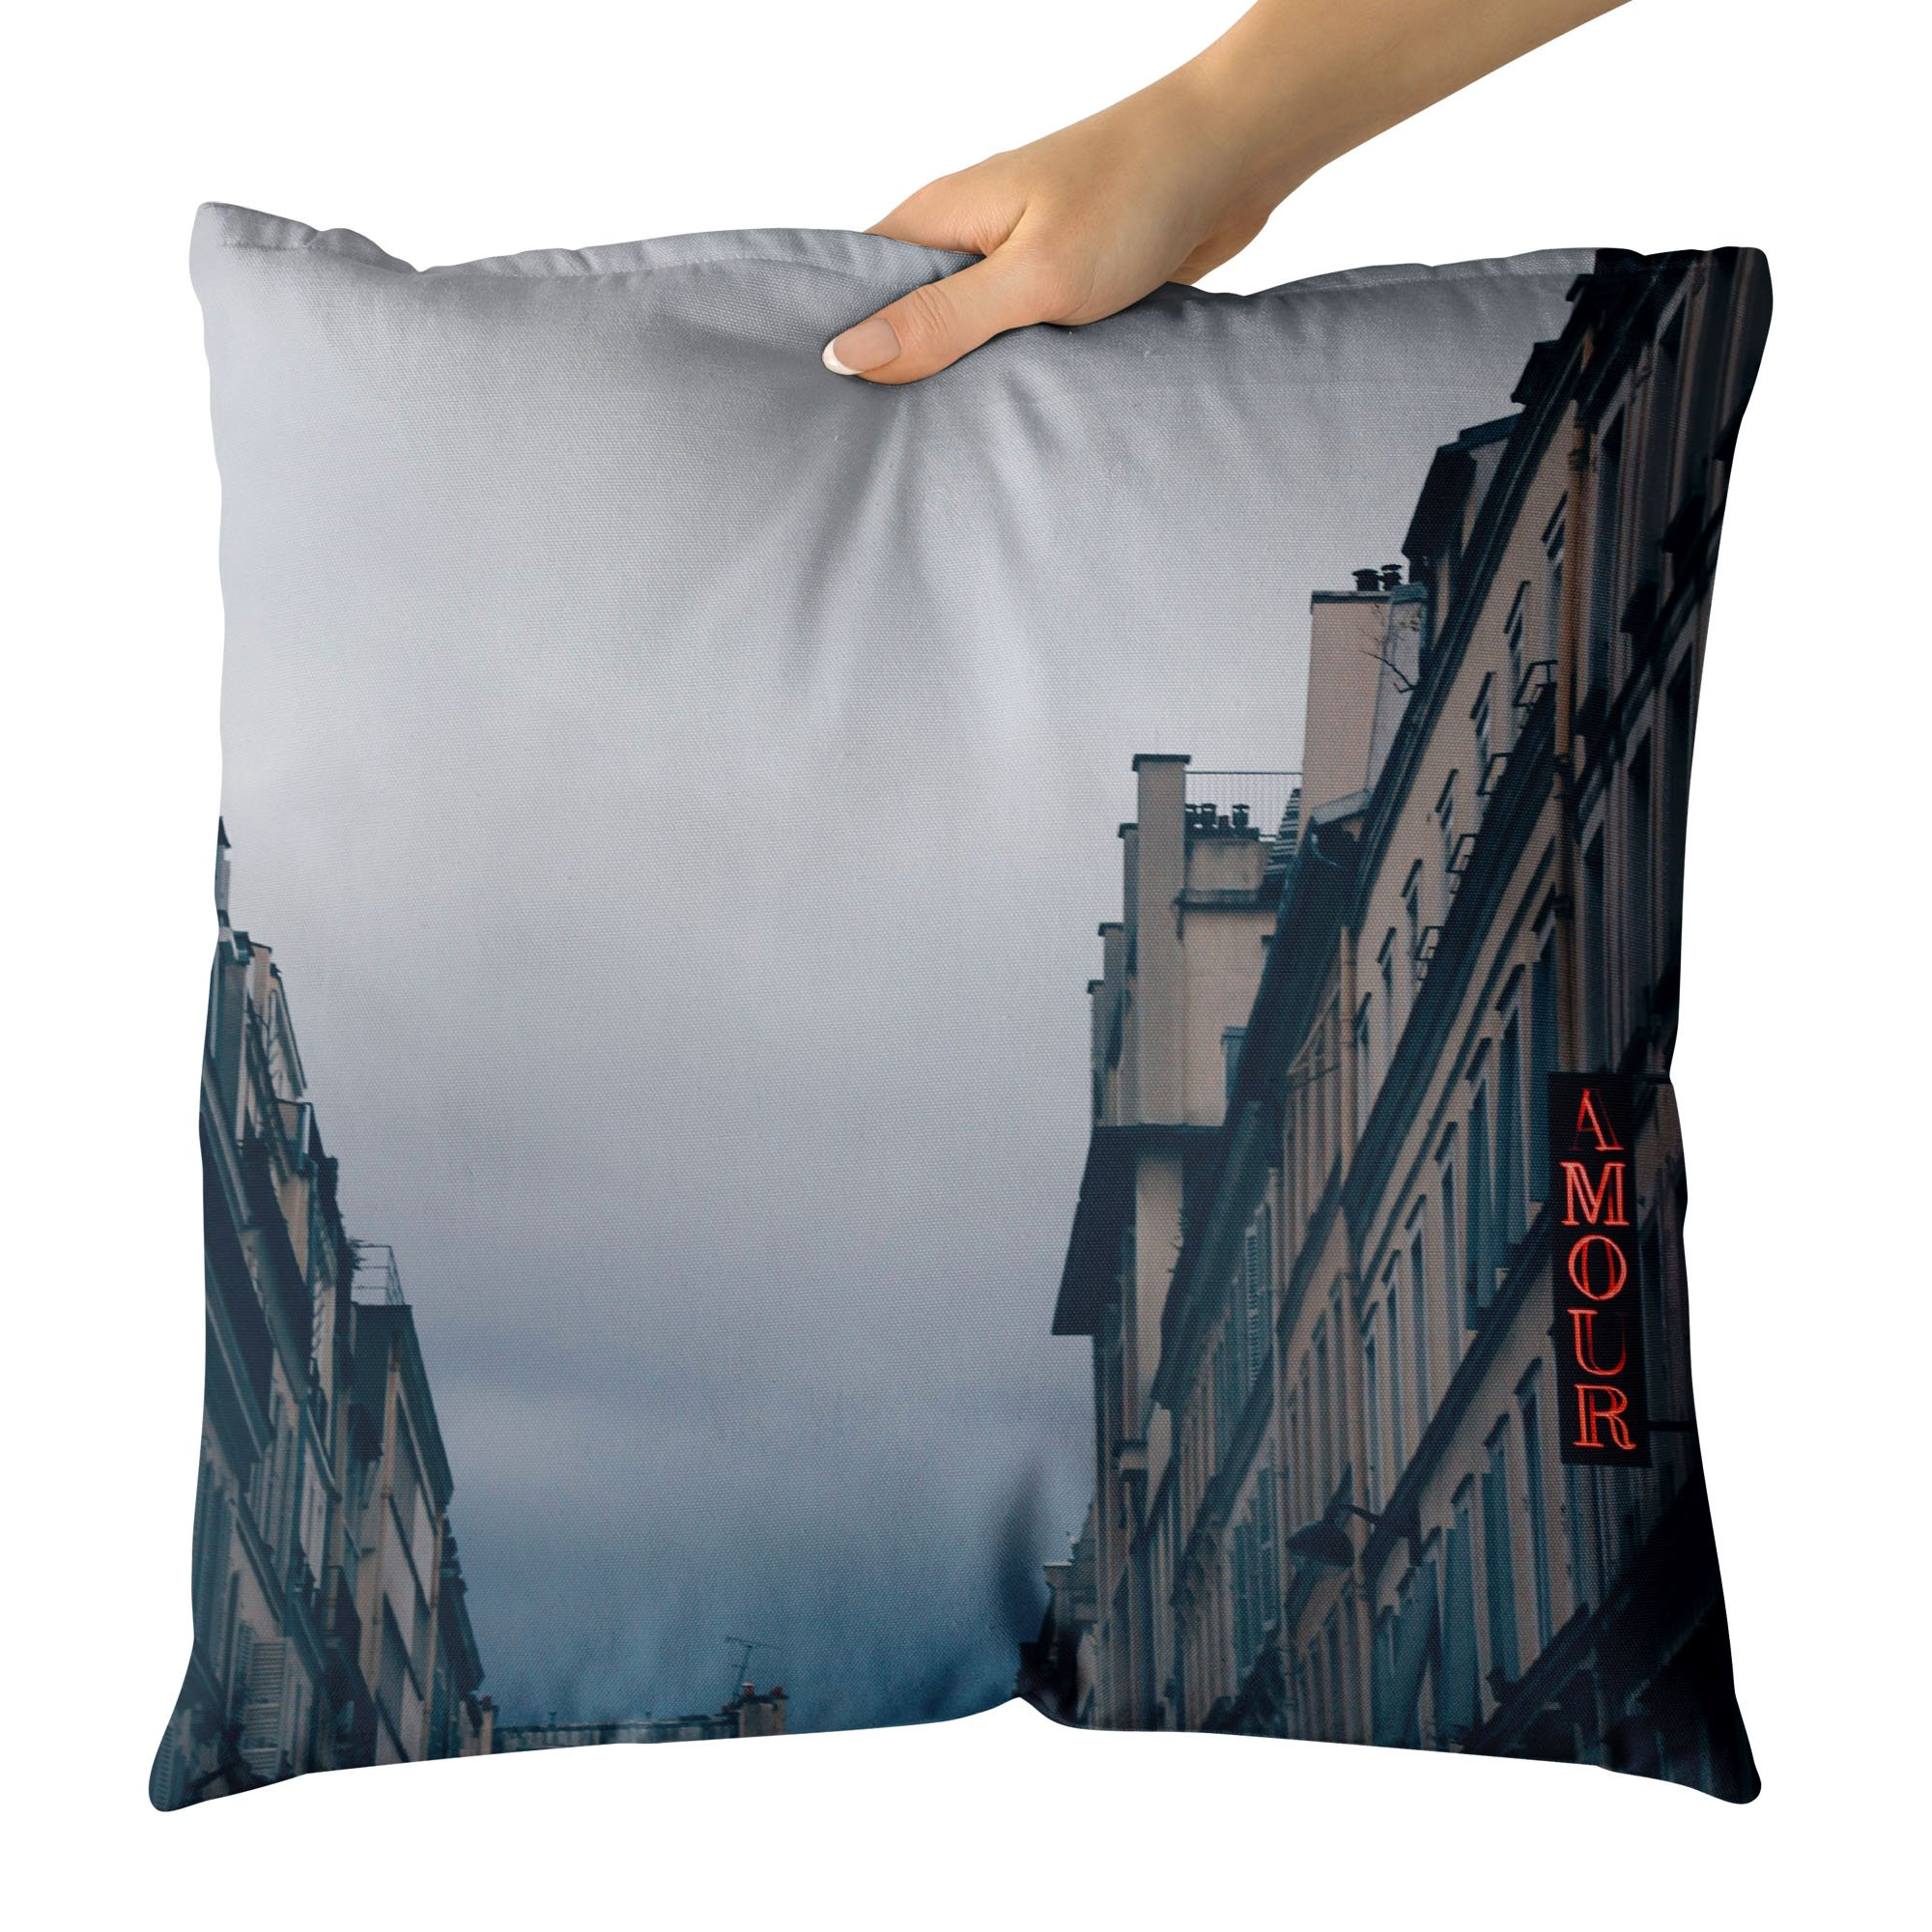 Westlake Art - Hotel France - Decorative Throw Pillow Cushion - Picture Photography Artwork Home Decor Living Room - 18x18 Inch (A039F)